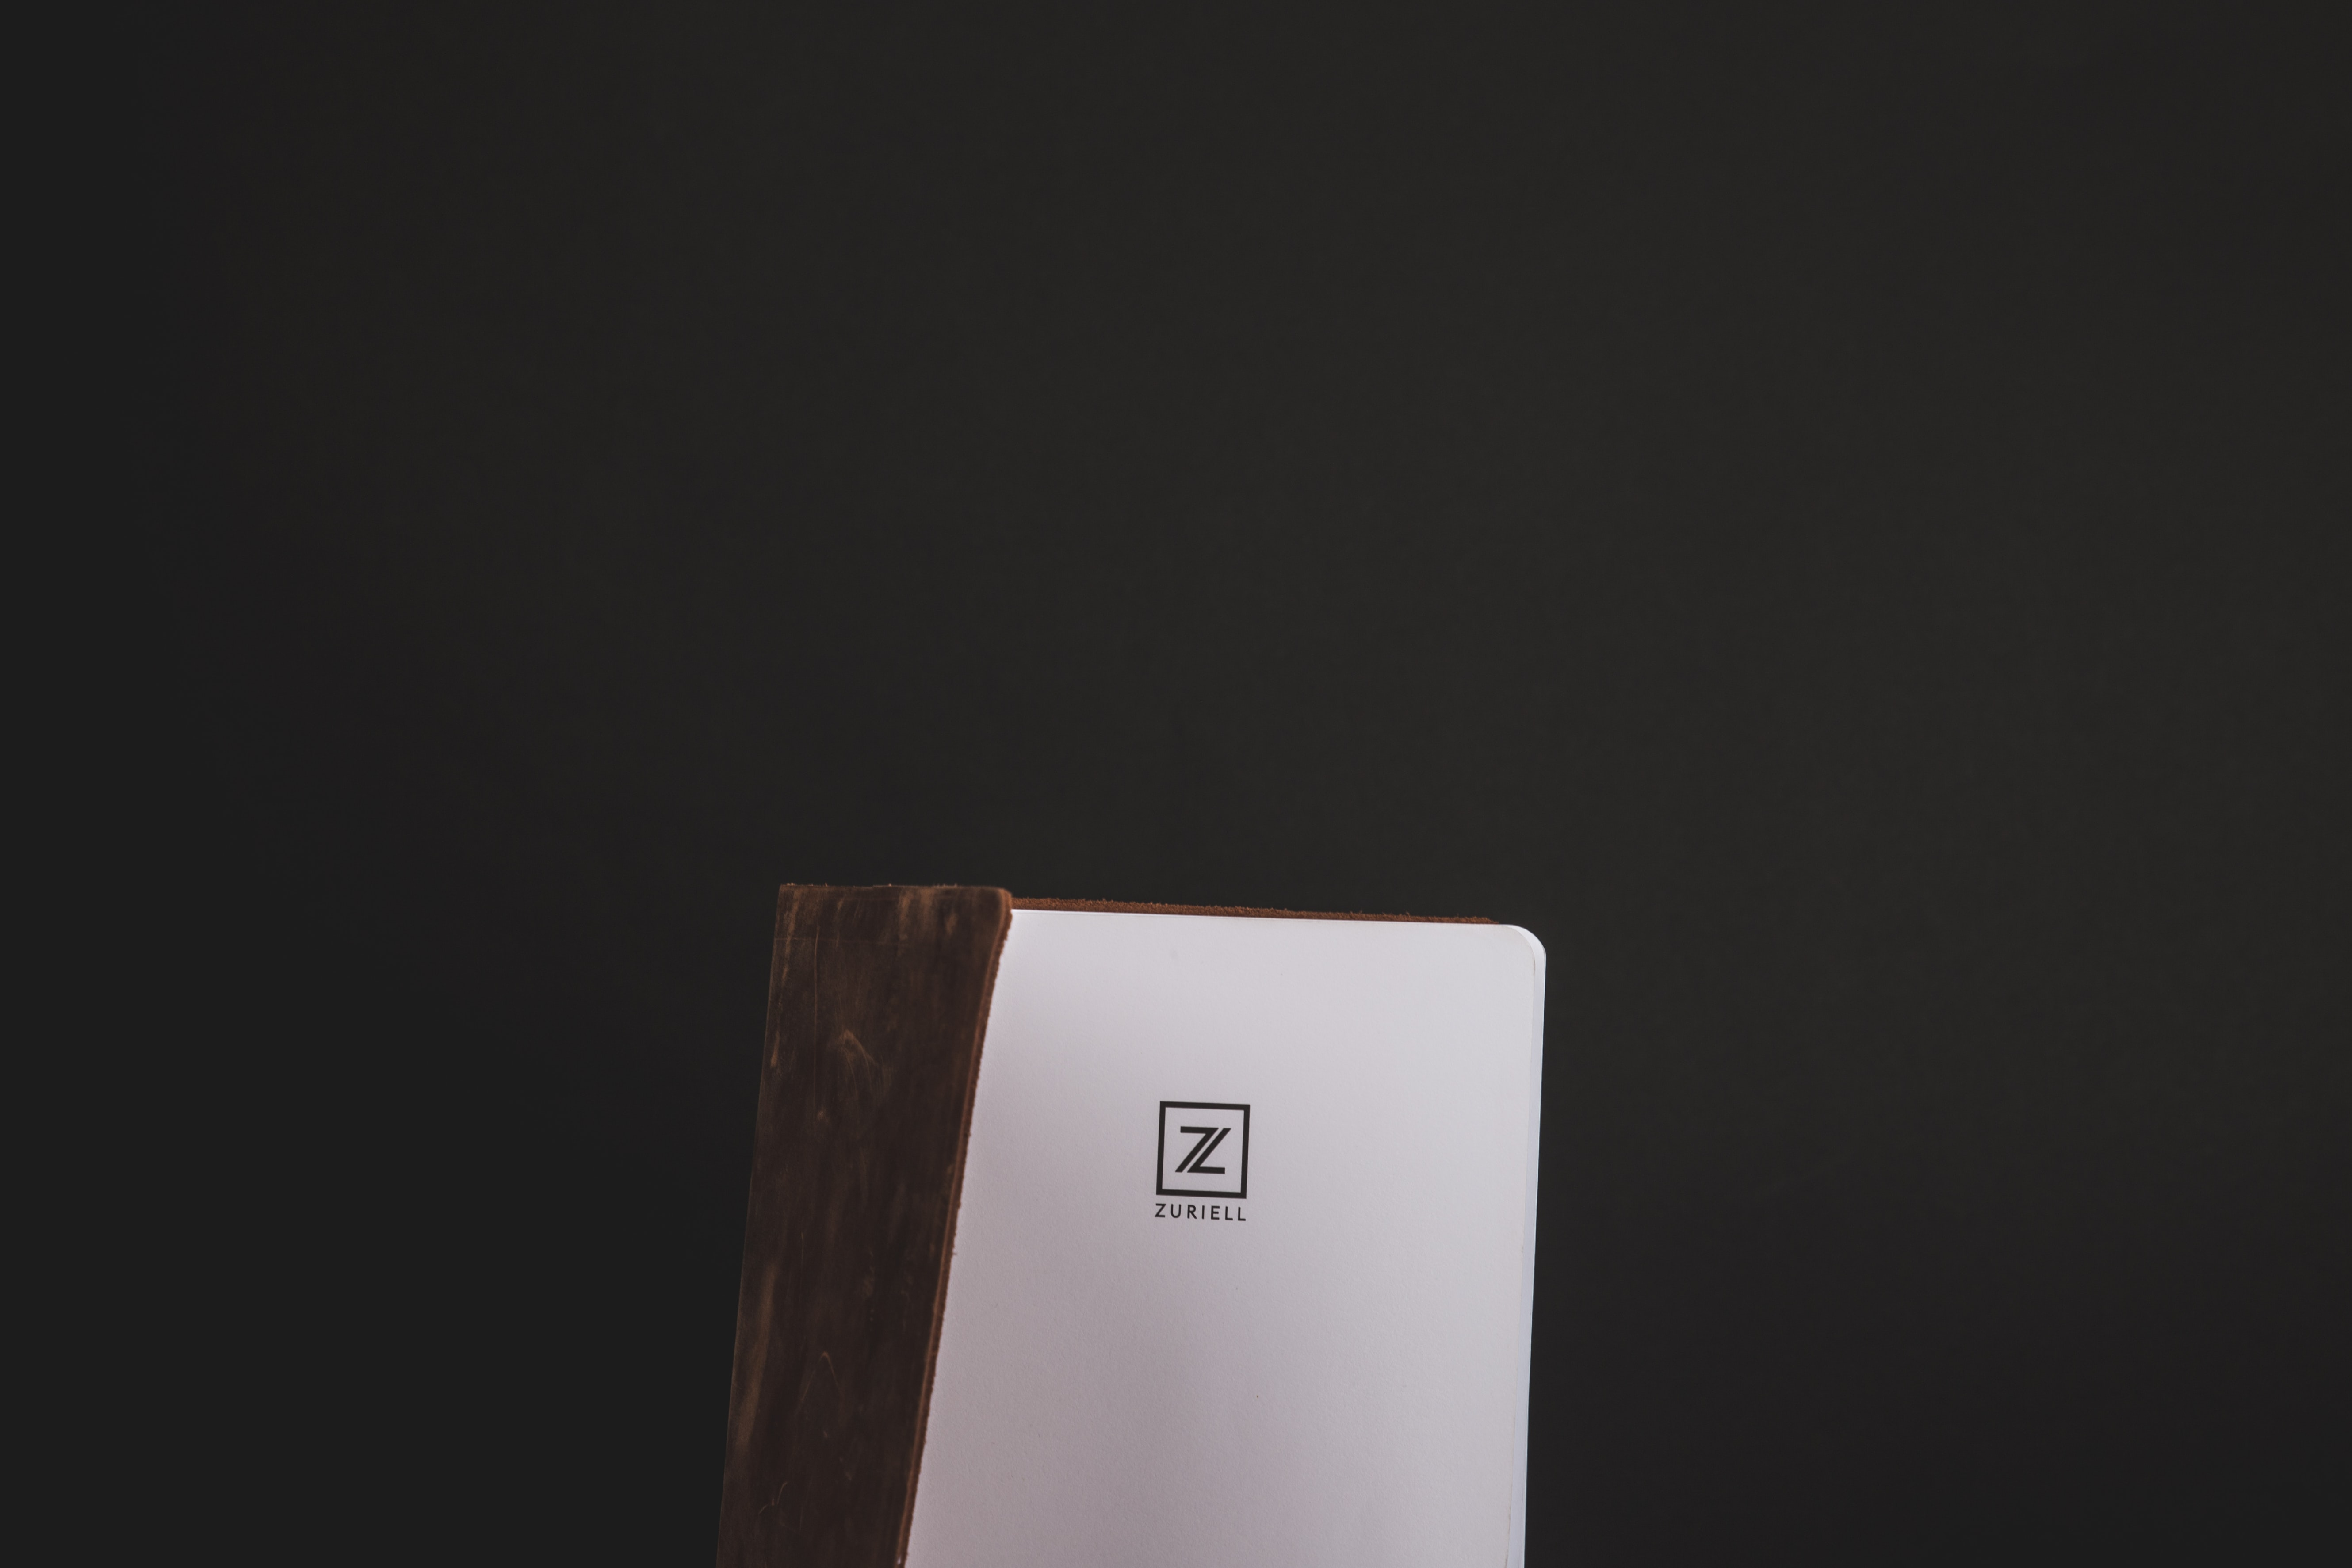 brown and white Z board